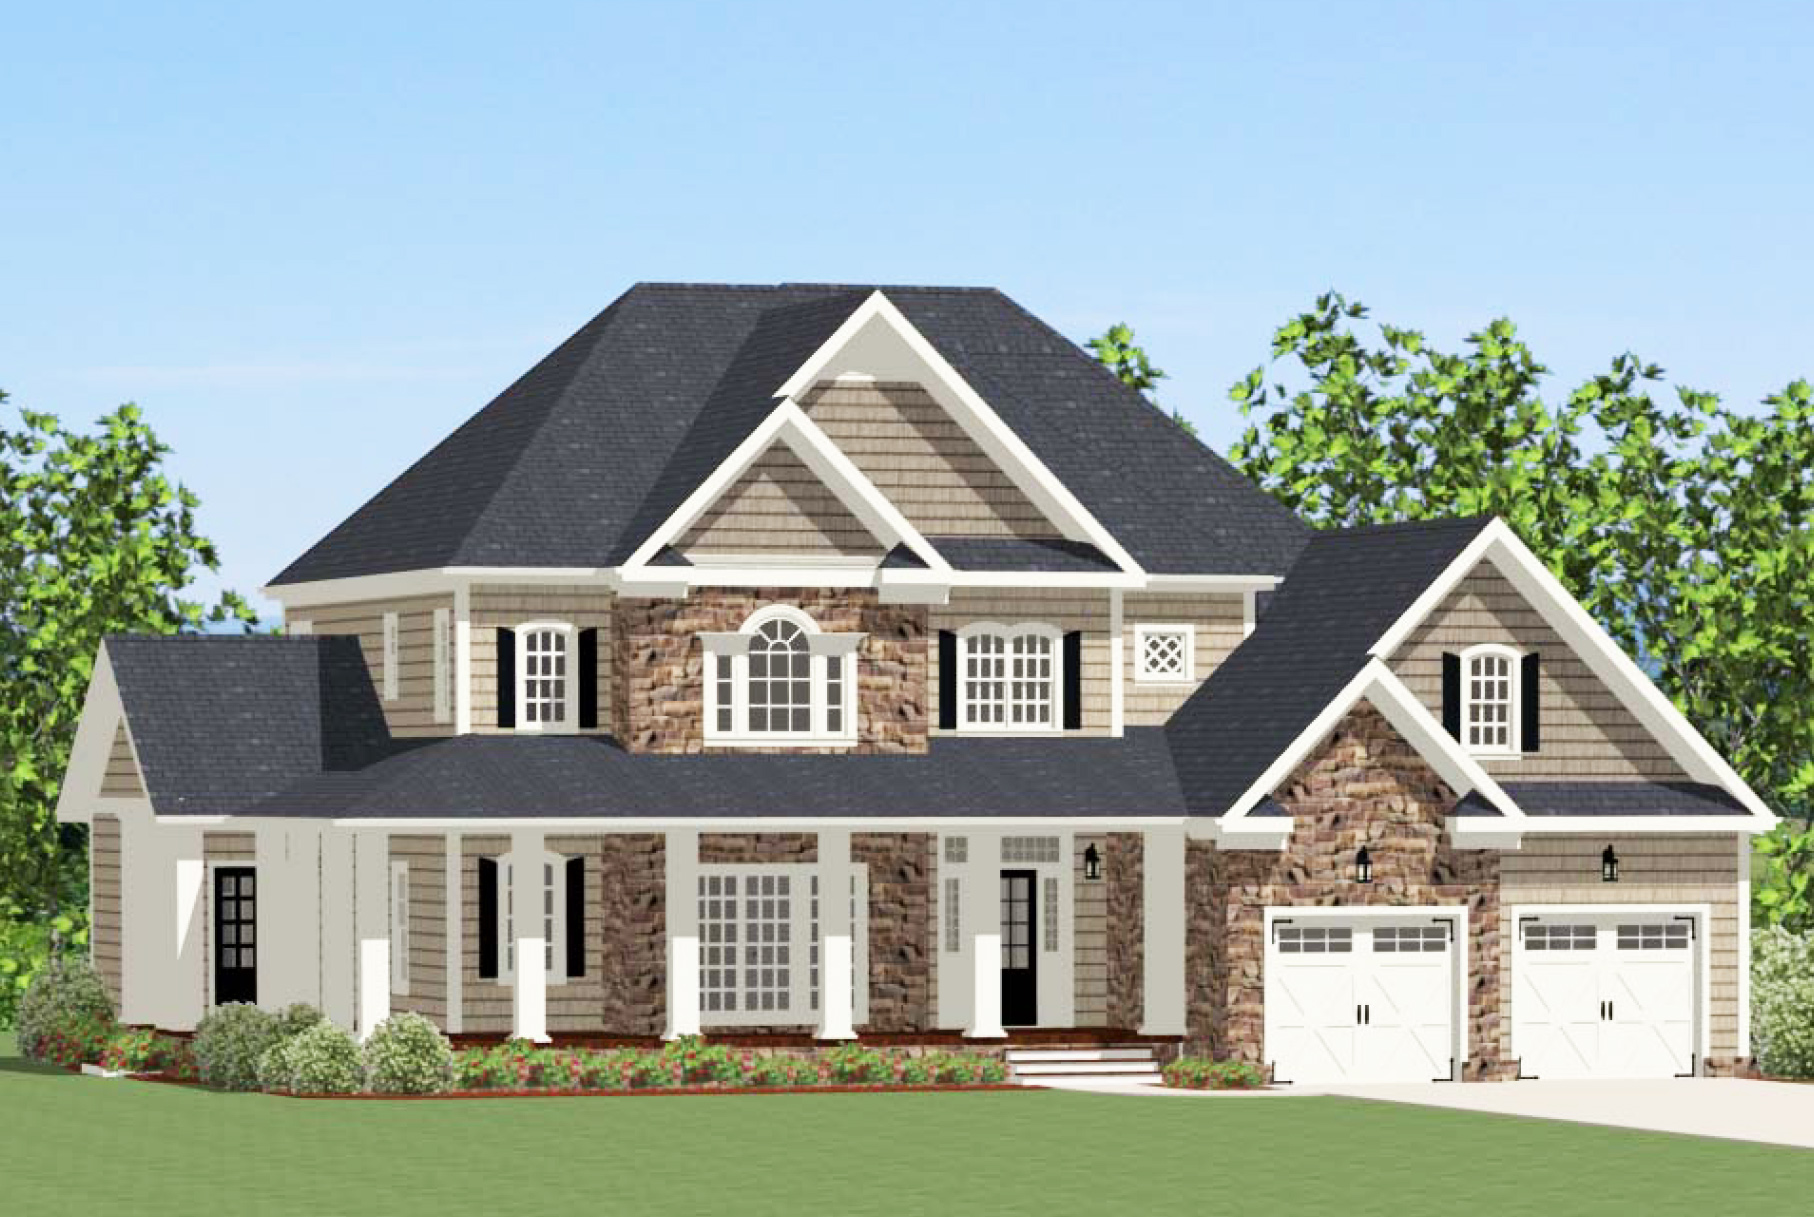 Grand Traditional House Plan 46263LA 1st Floor Master